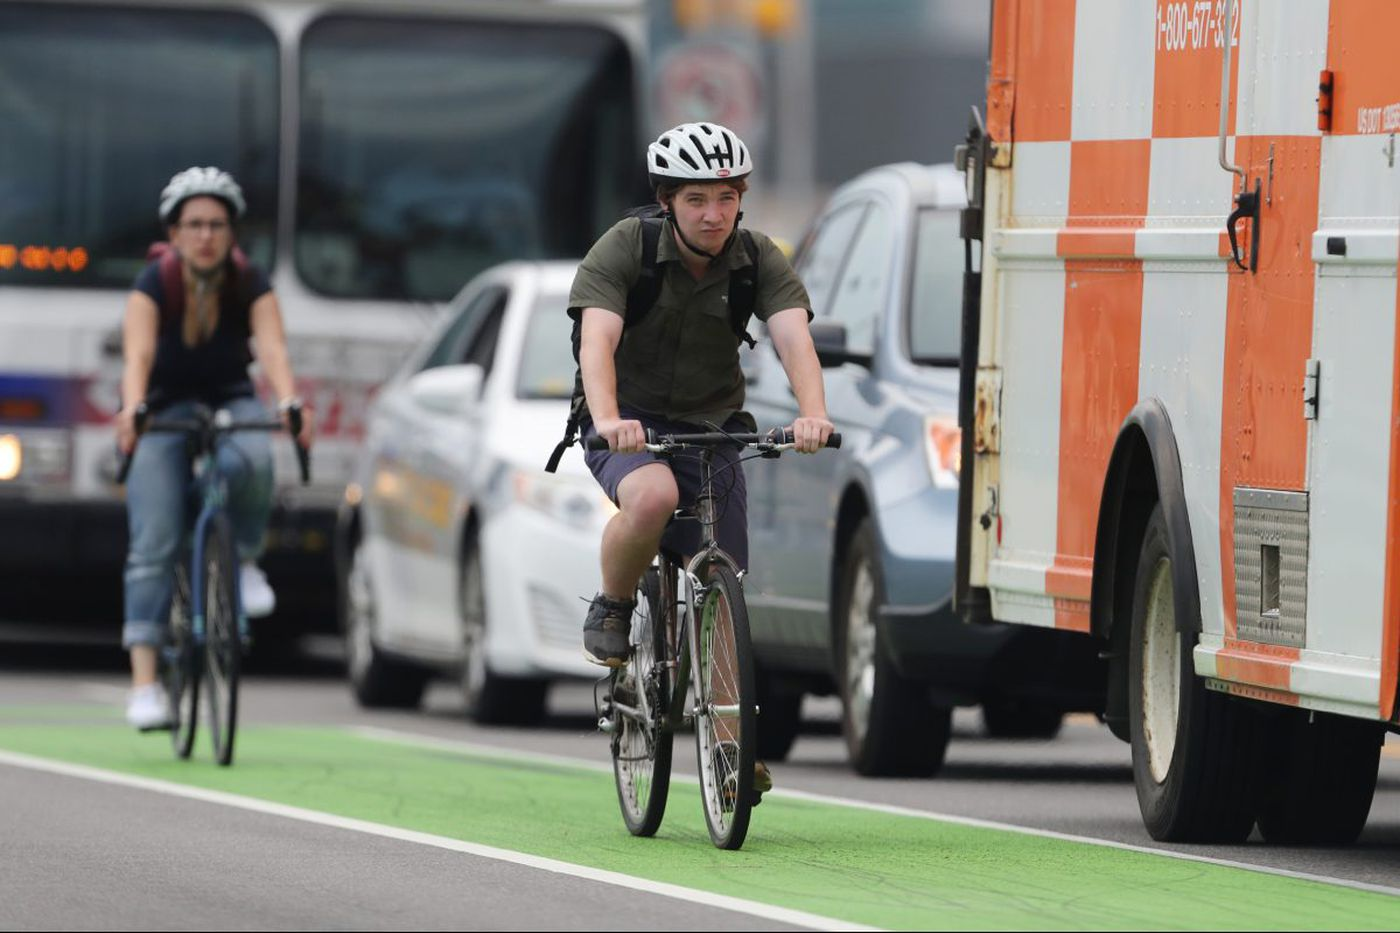 As biking death prompts safety concerns, Philly to upgrade bike lanes on South and 27th Streets